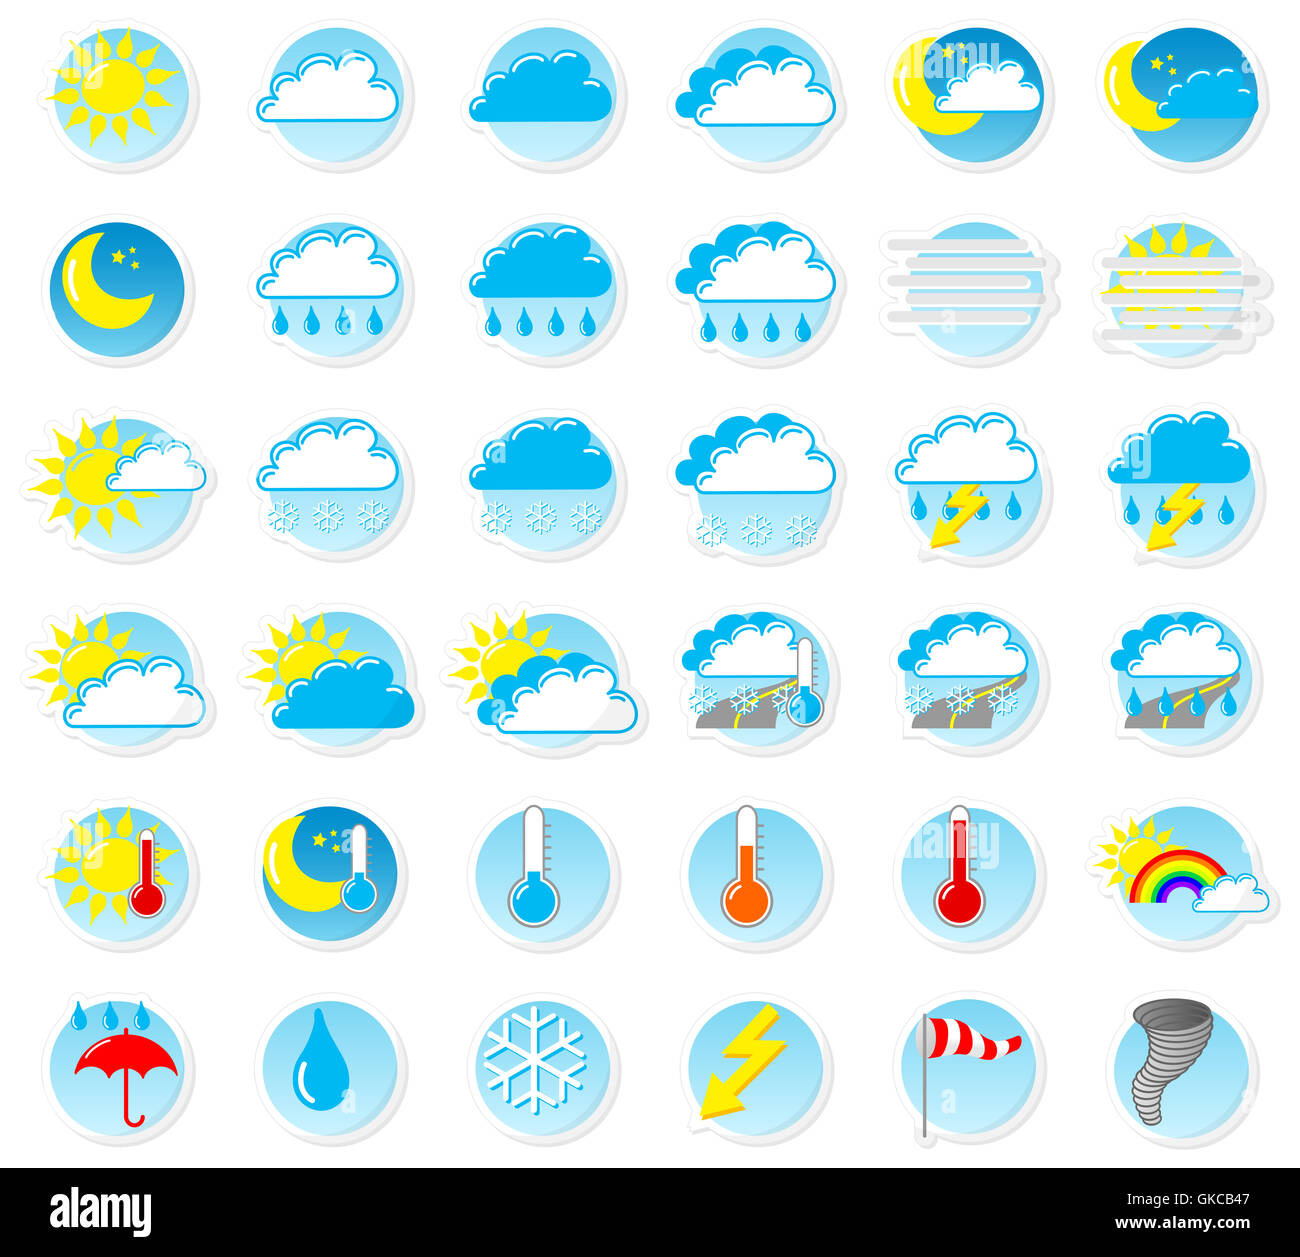 weather symbols - Stock Image